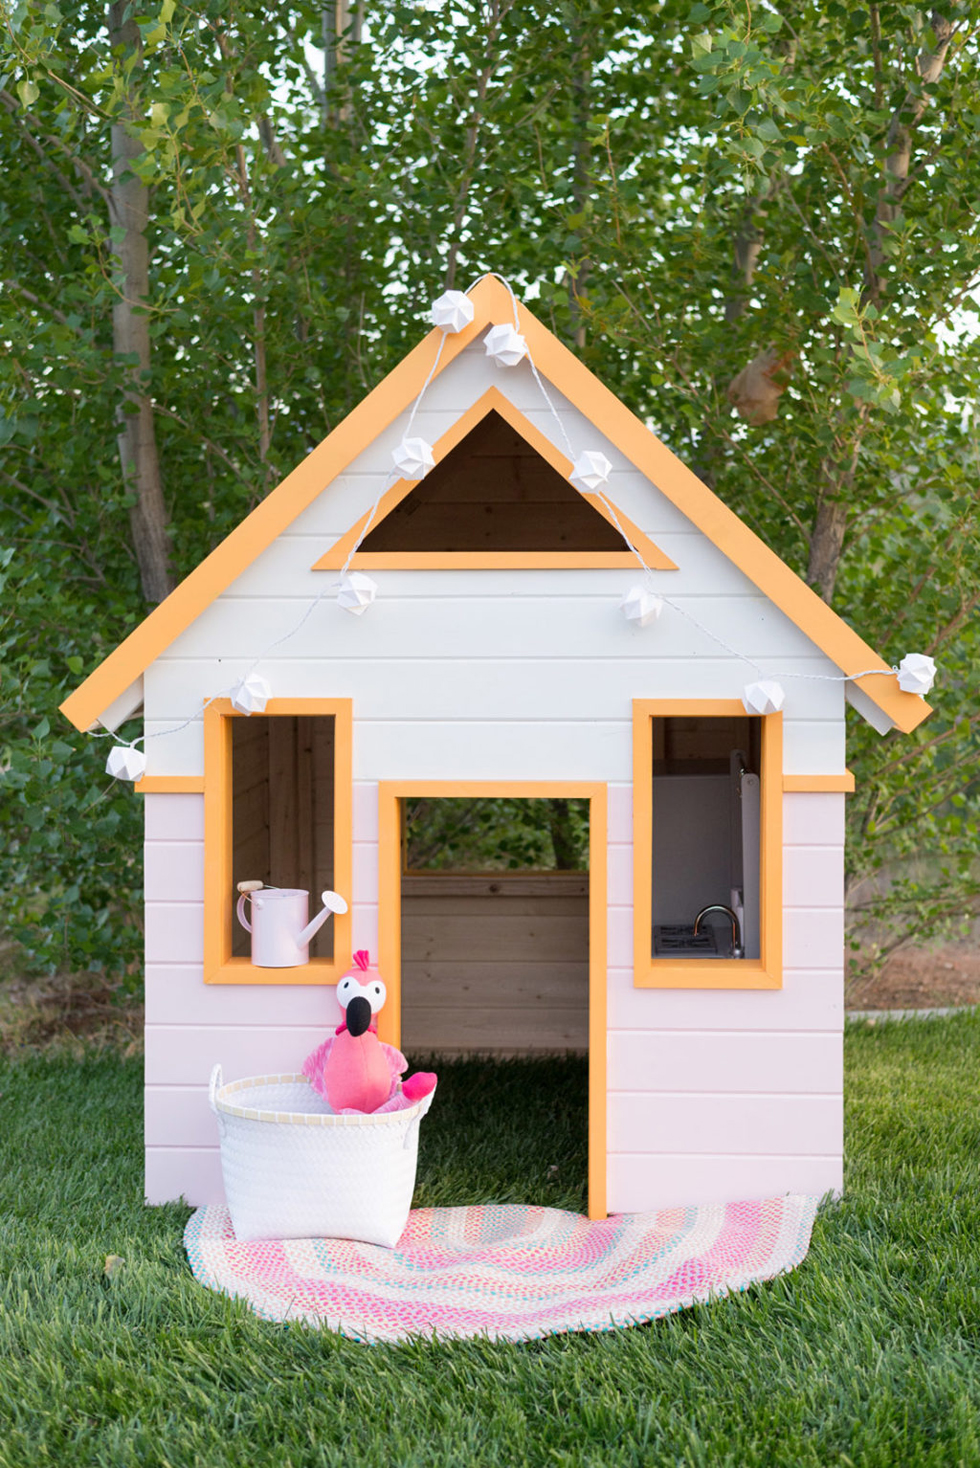 Children's playhouse painted pink